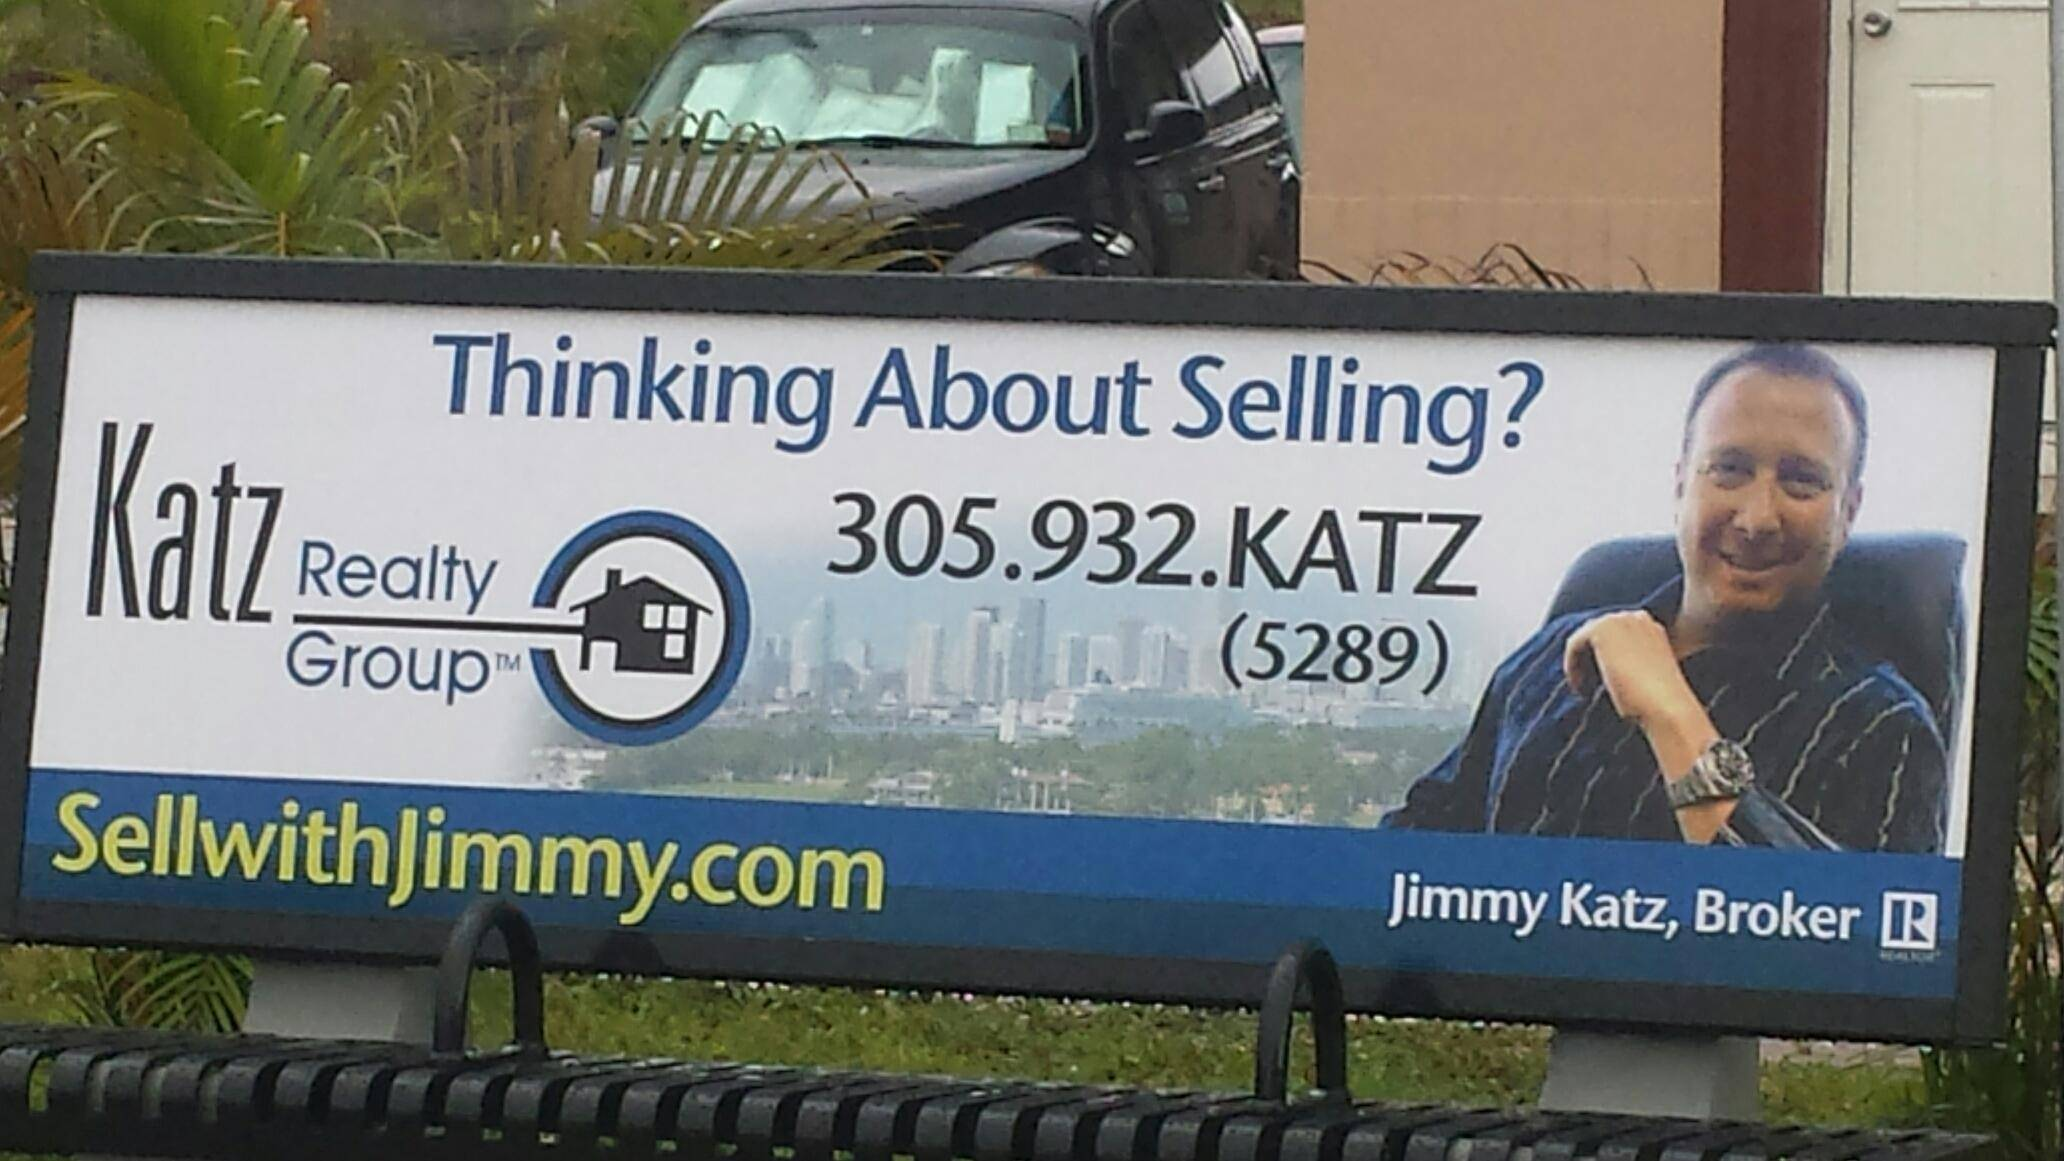 Katz Realty Group Bus Bench Ad